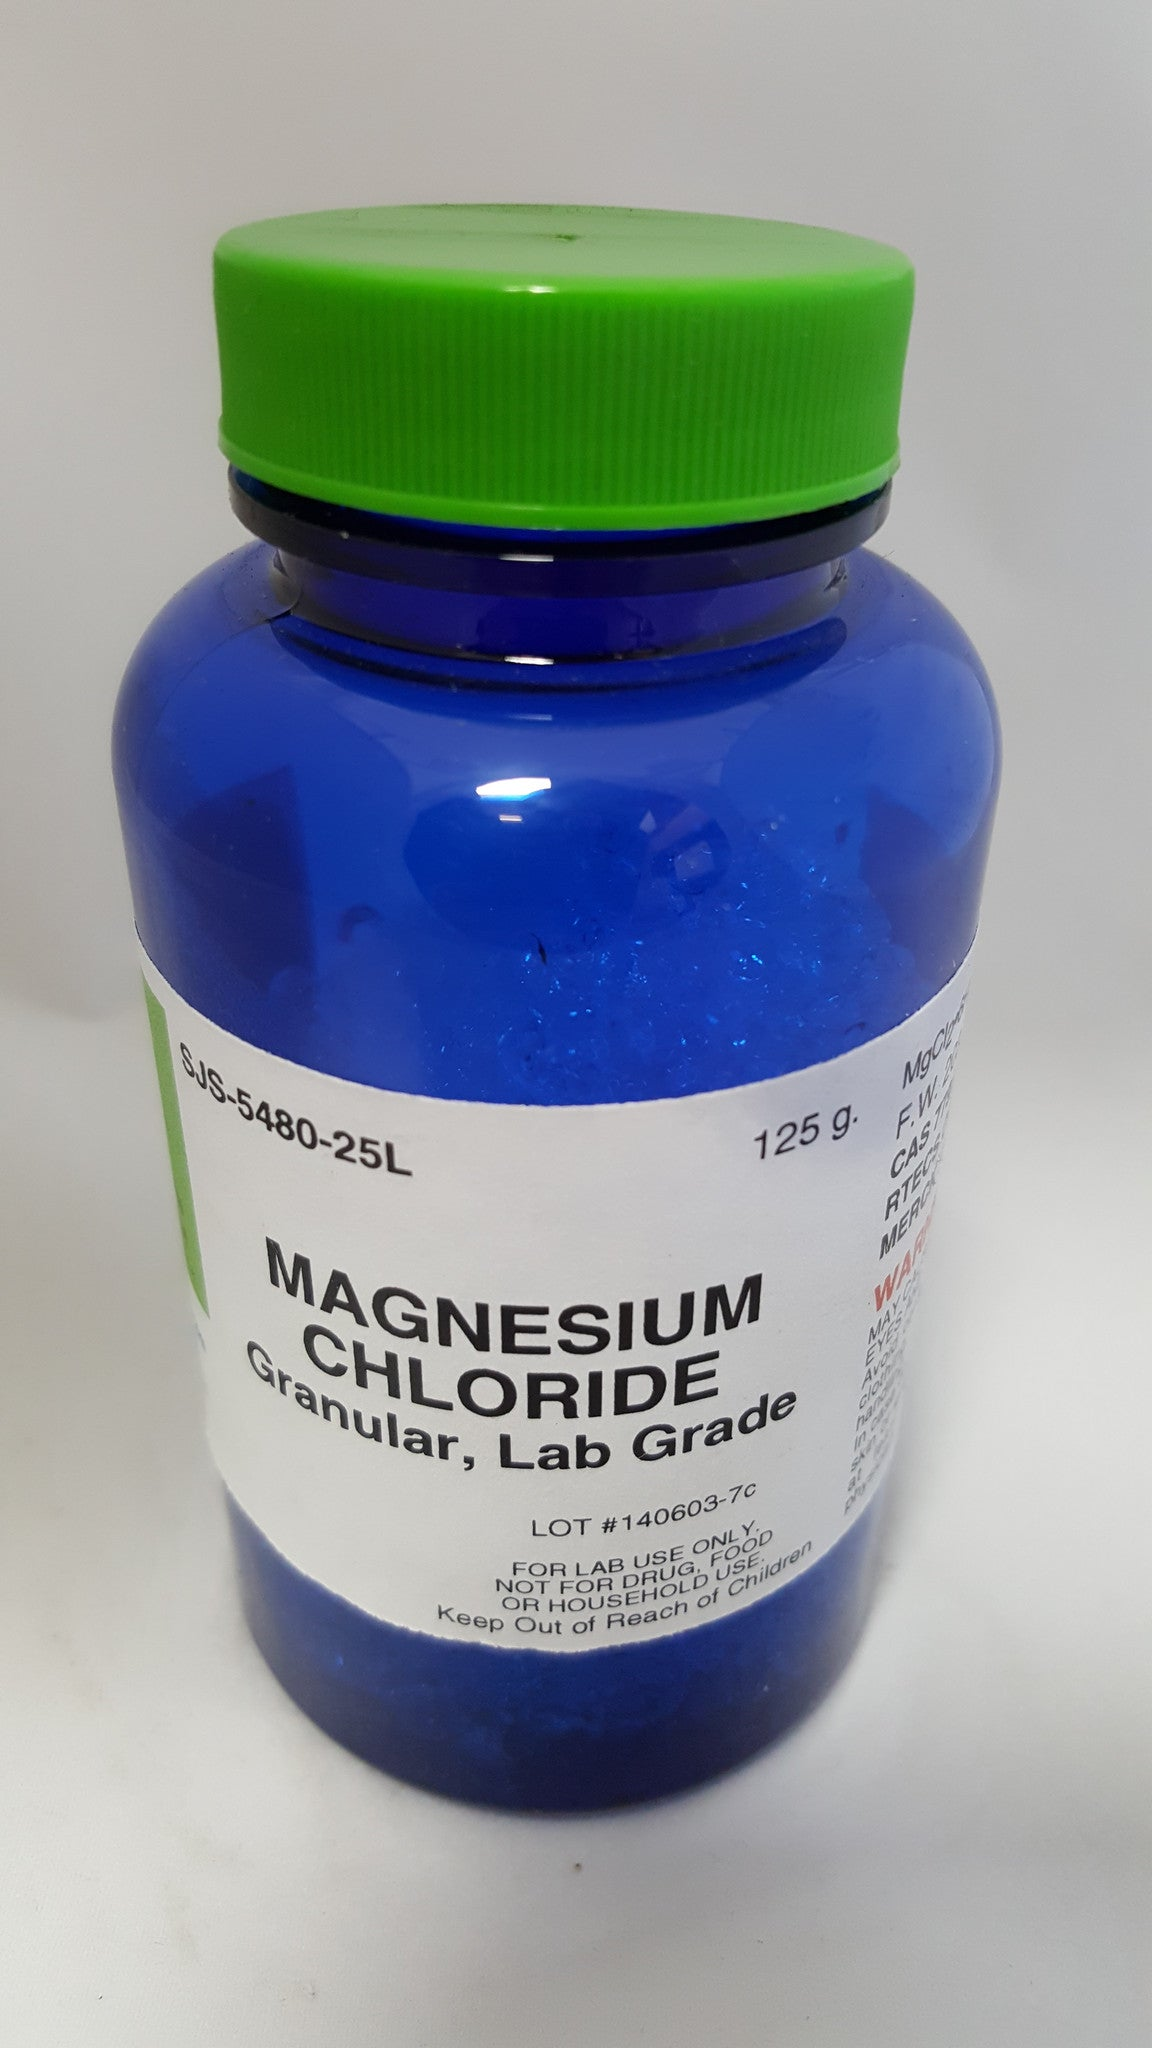 Magnesium Chloride 125g LG - The Science Shop